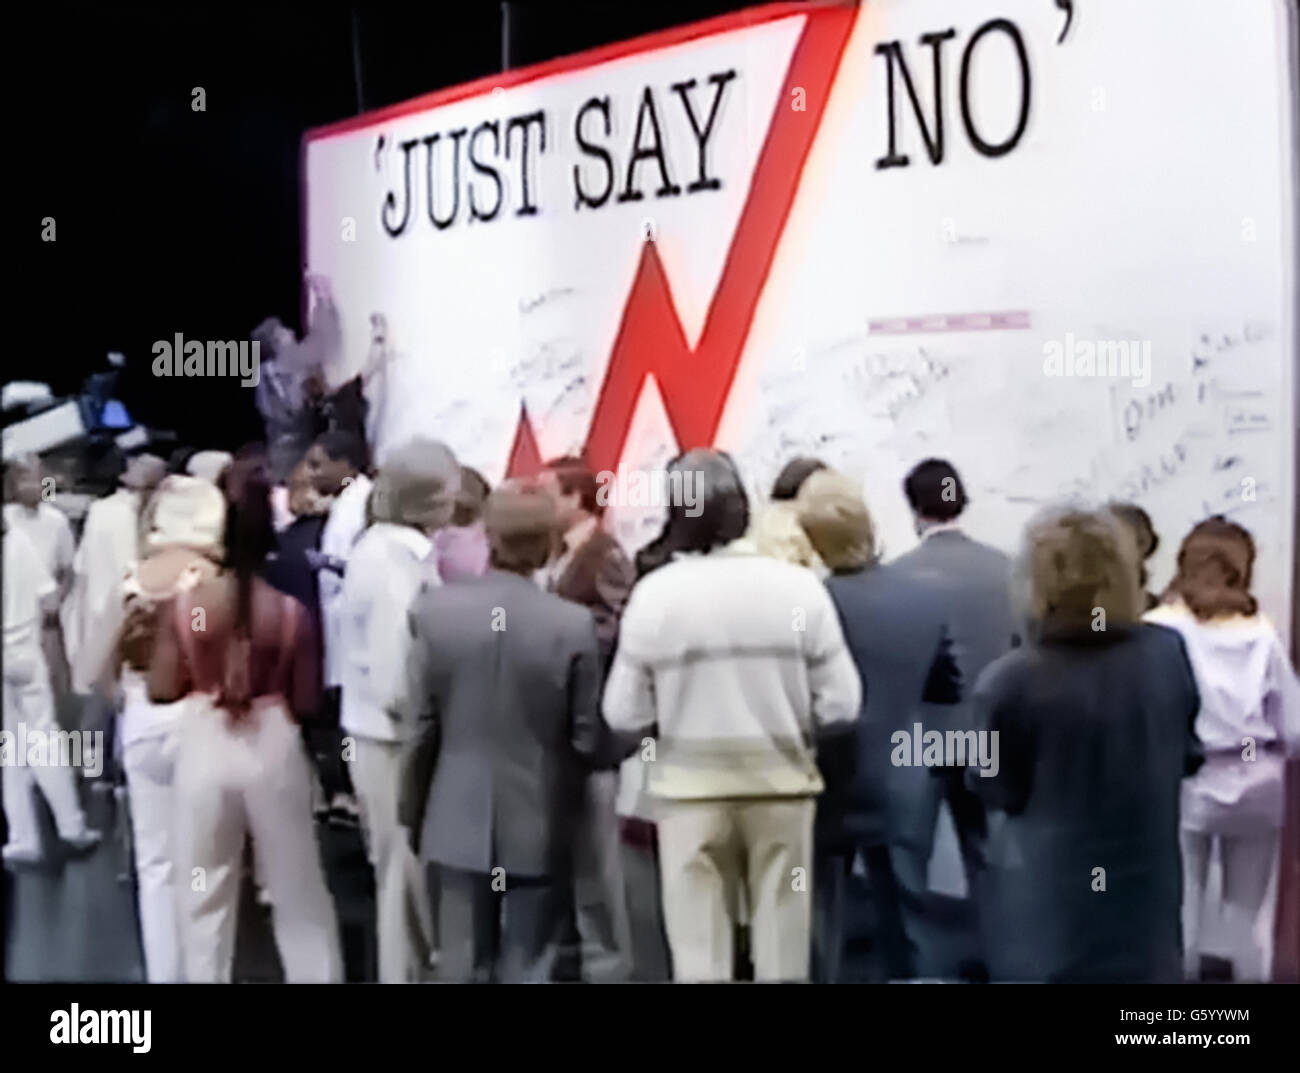 'Just Say No' wall signed by celebrities such as Princess Diana, Rolf Harris and Floella Benjamin. Still - Stock Image